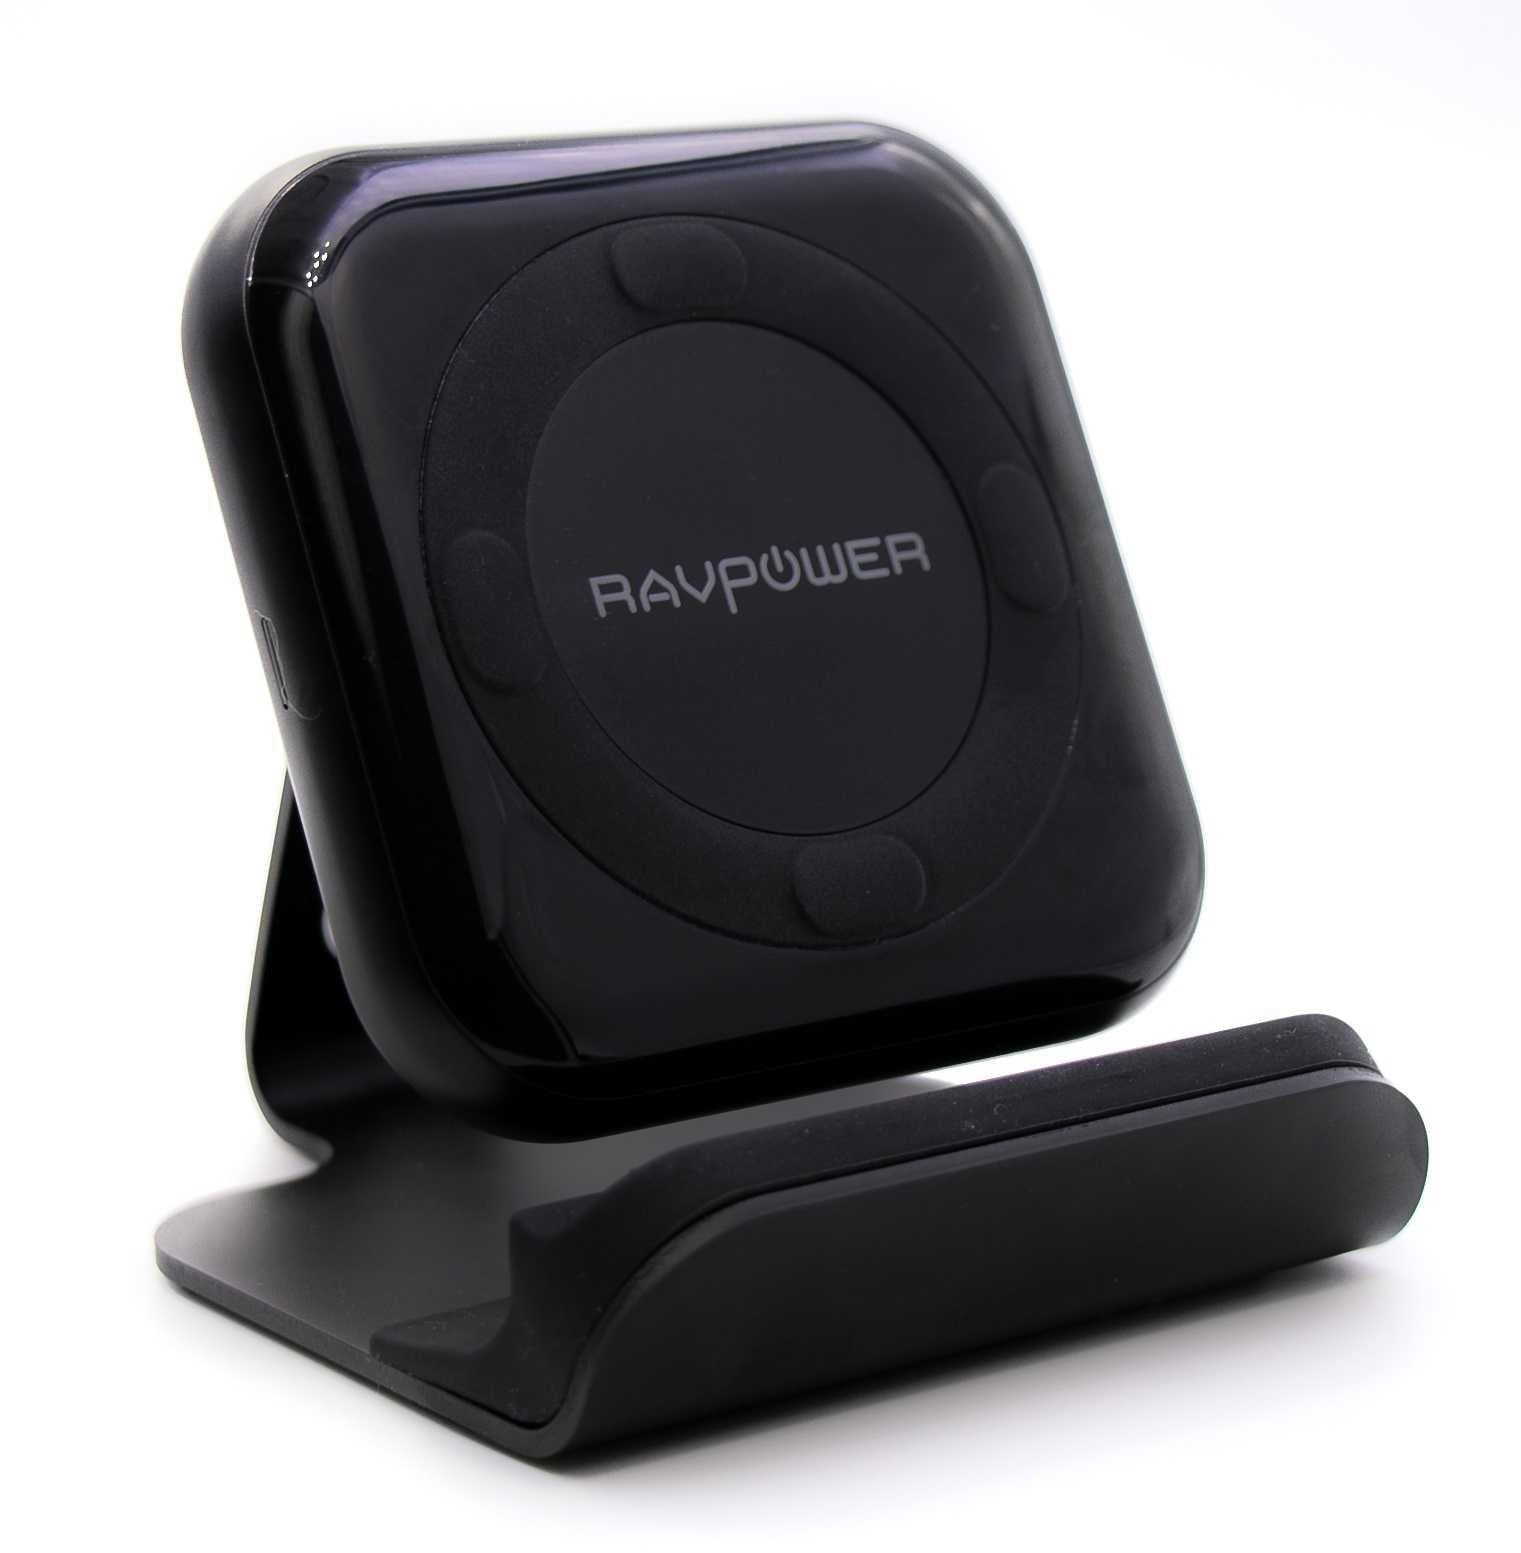 RAVPower QC3.0 10W Fast Wireless Charging Pad with Stand - Black